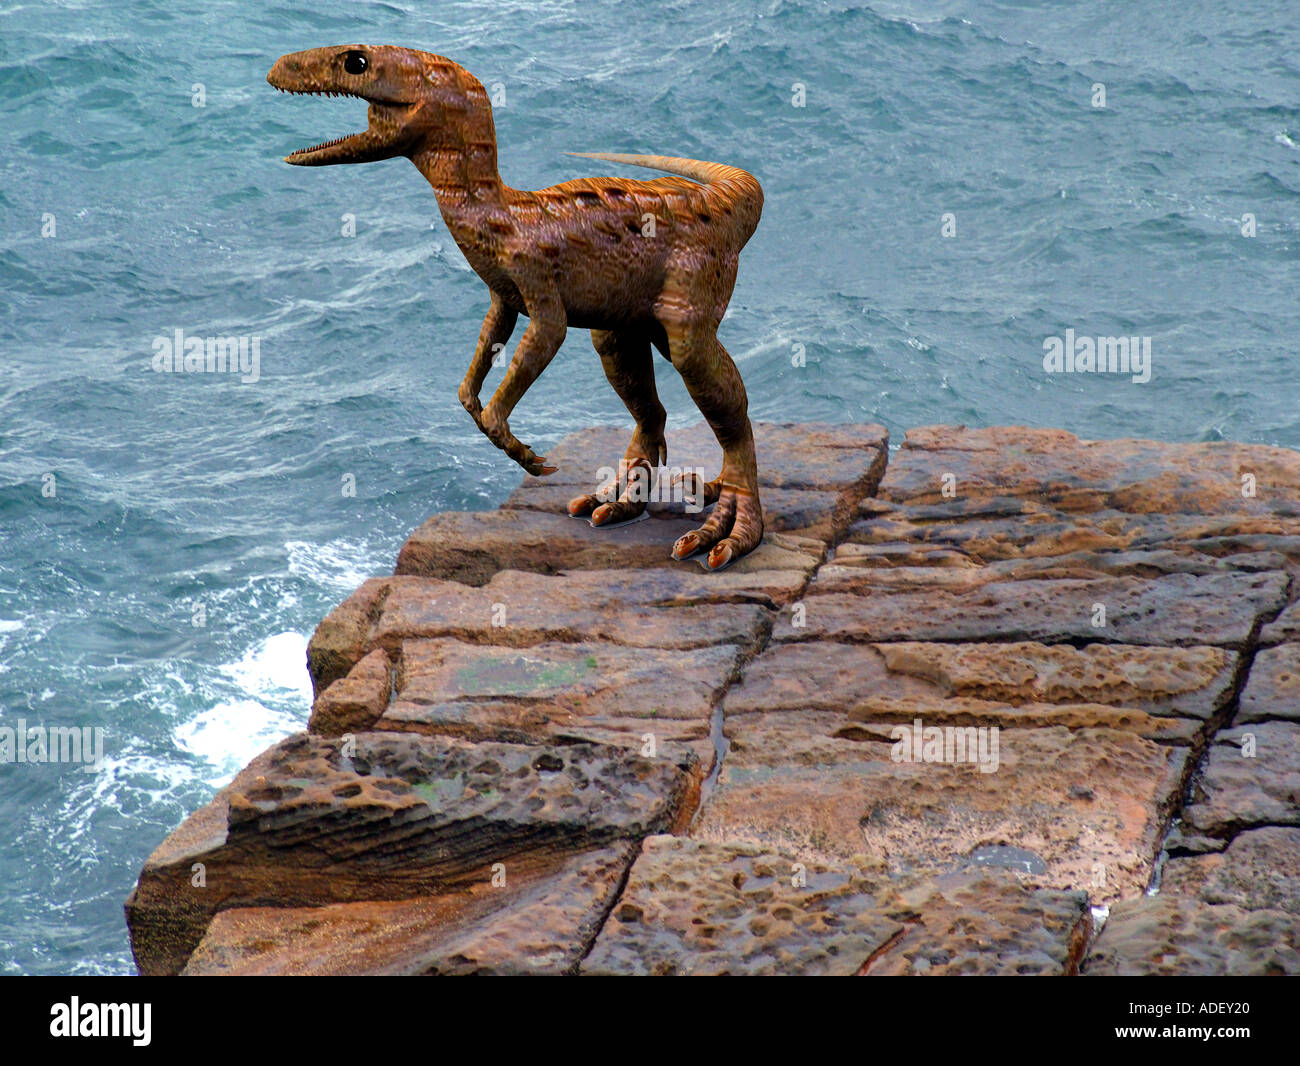 velociraptor a preditory therapod dinosaur the prehistoric raptor is extinct so this is a 3d illustration - Stock Image